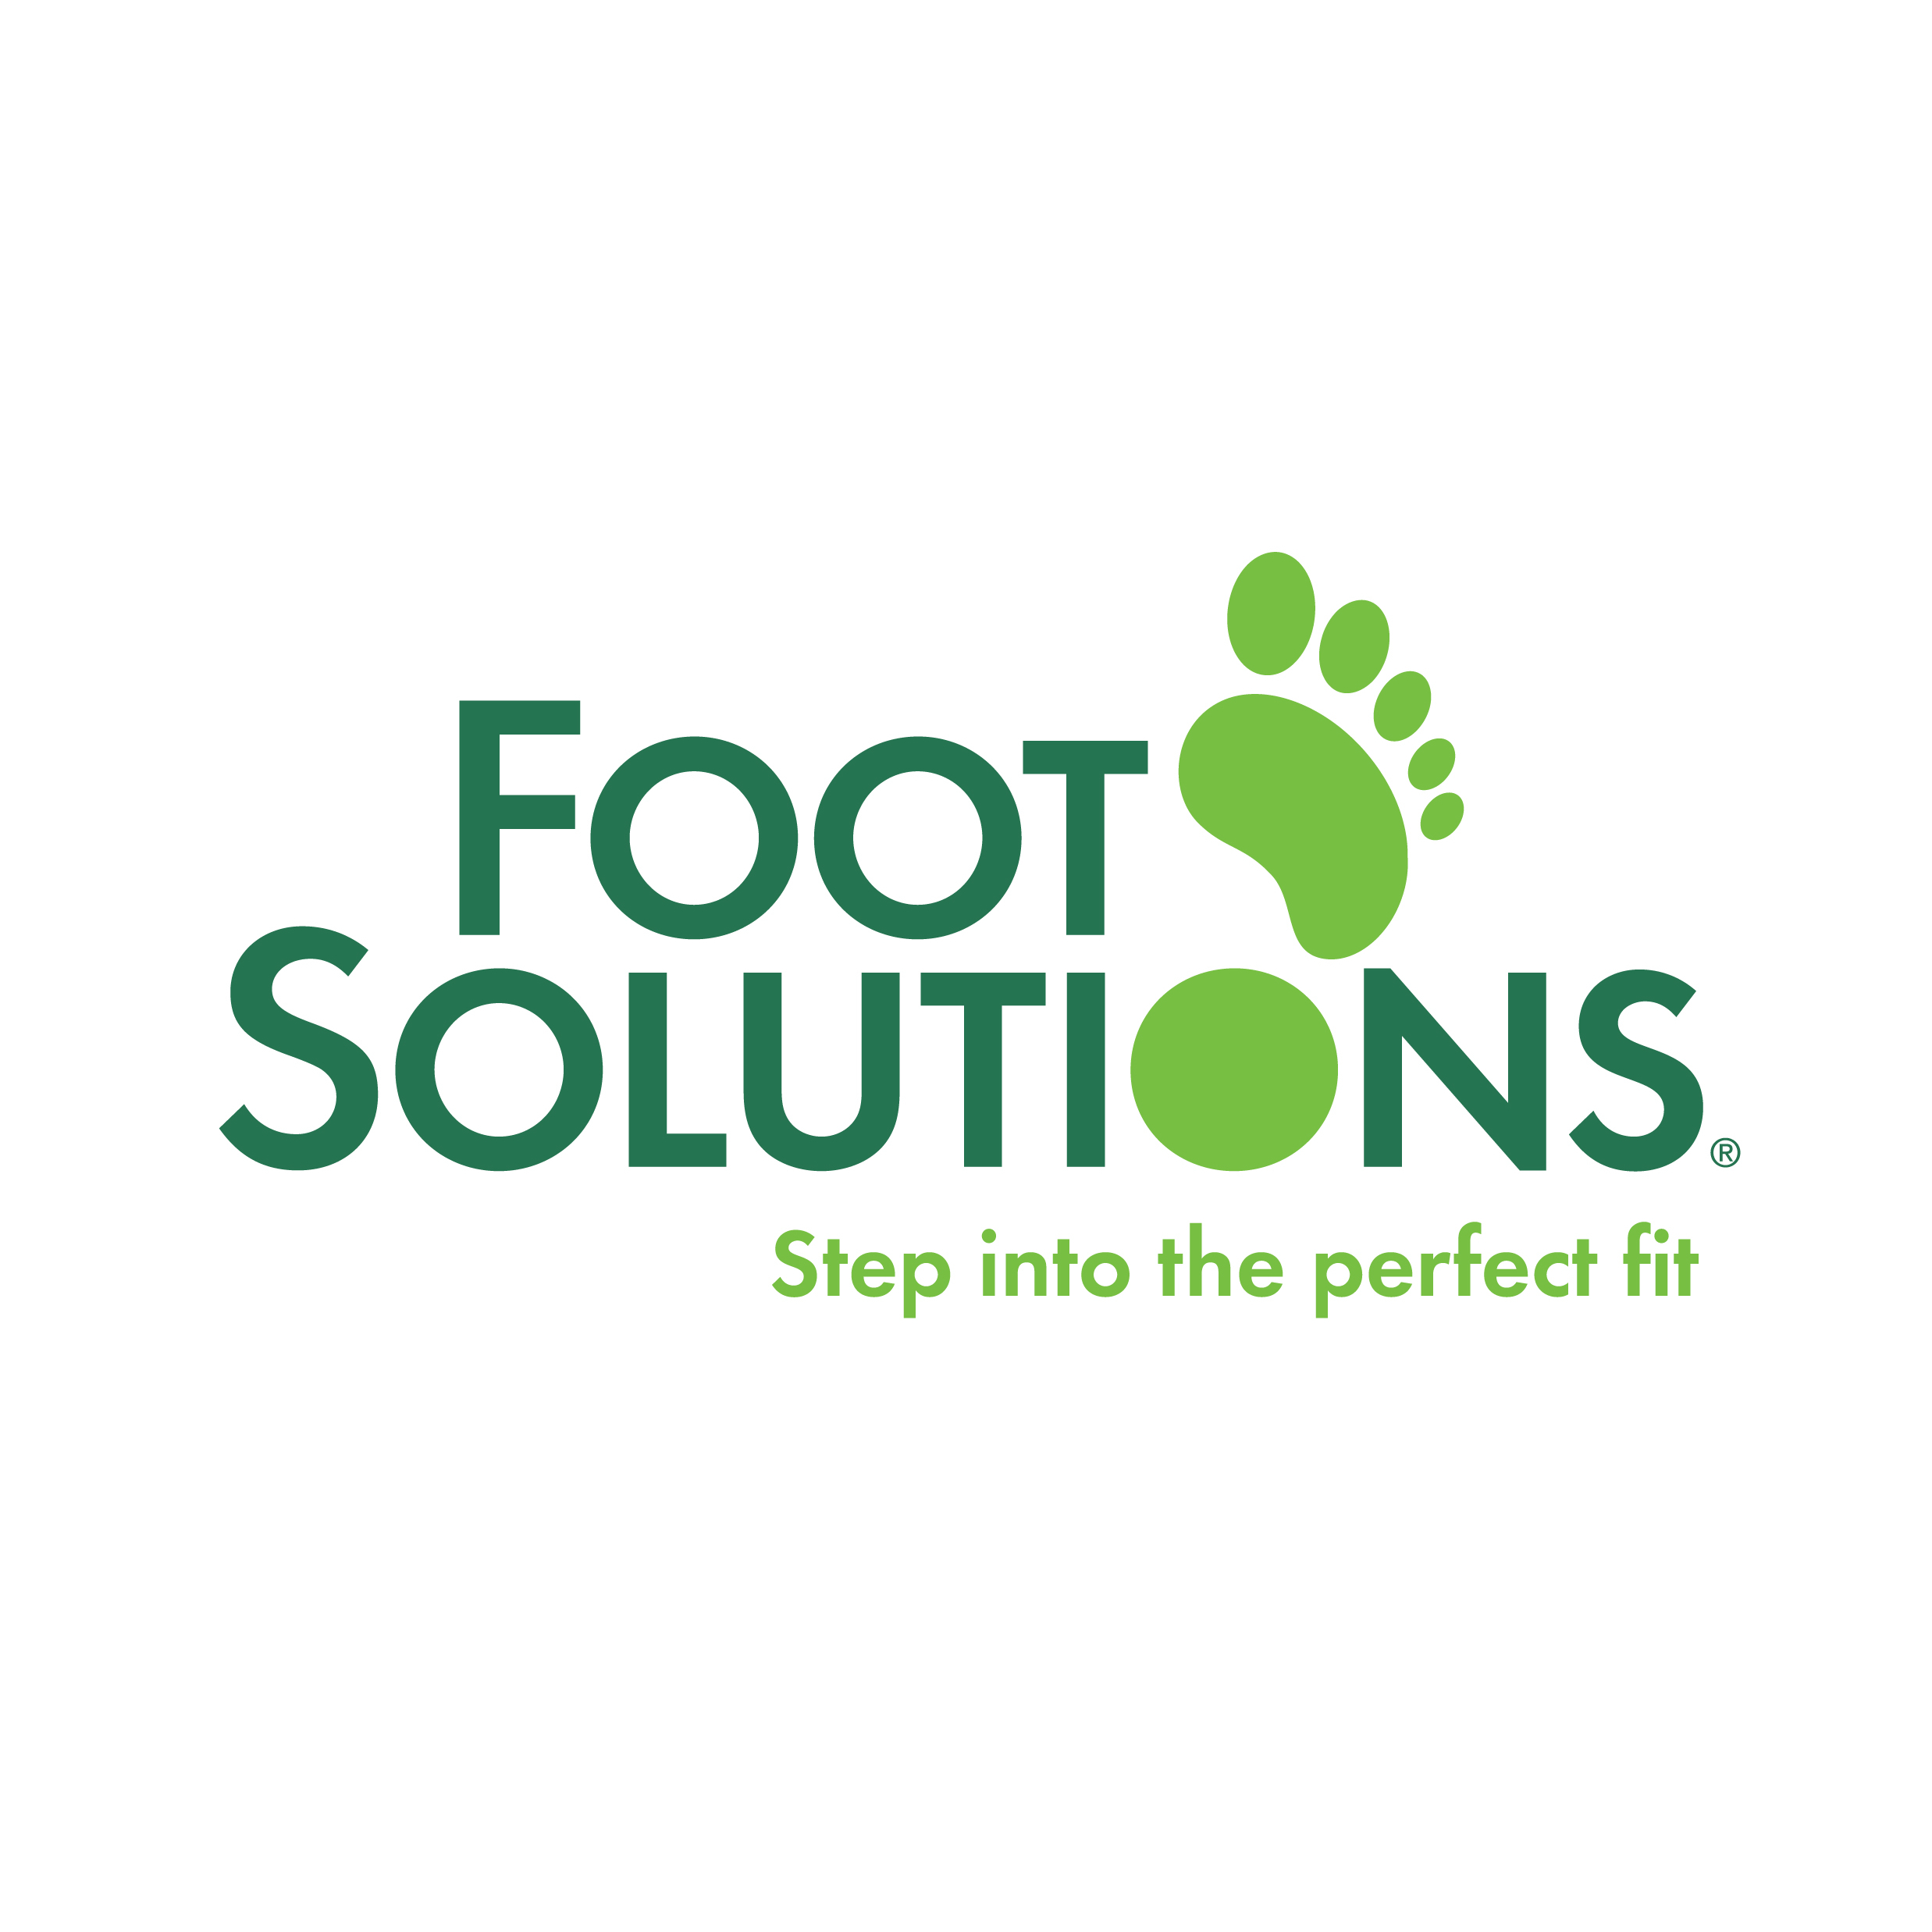 I came to Foot Solutions after studying the retail pedorthic options in Austin and San Antonio. I had a doctor's prescription for over-the-counter orthotics to cure plantar fasciitis in my right 9/10(3).